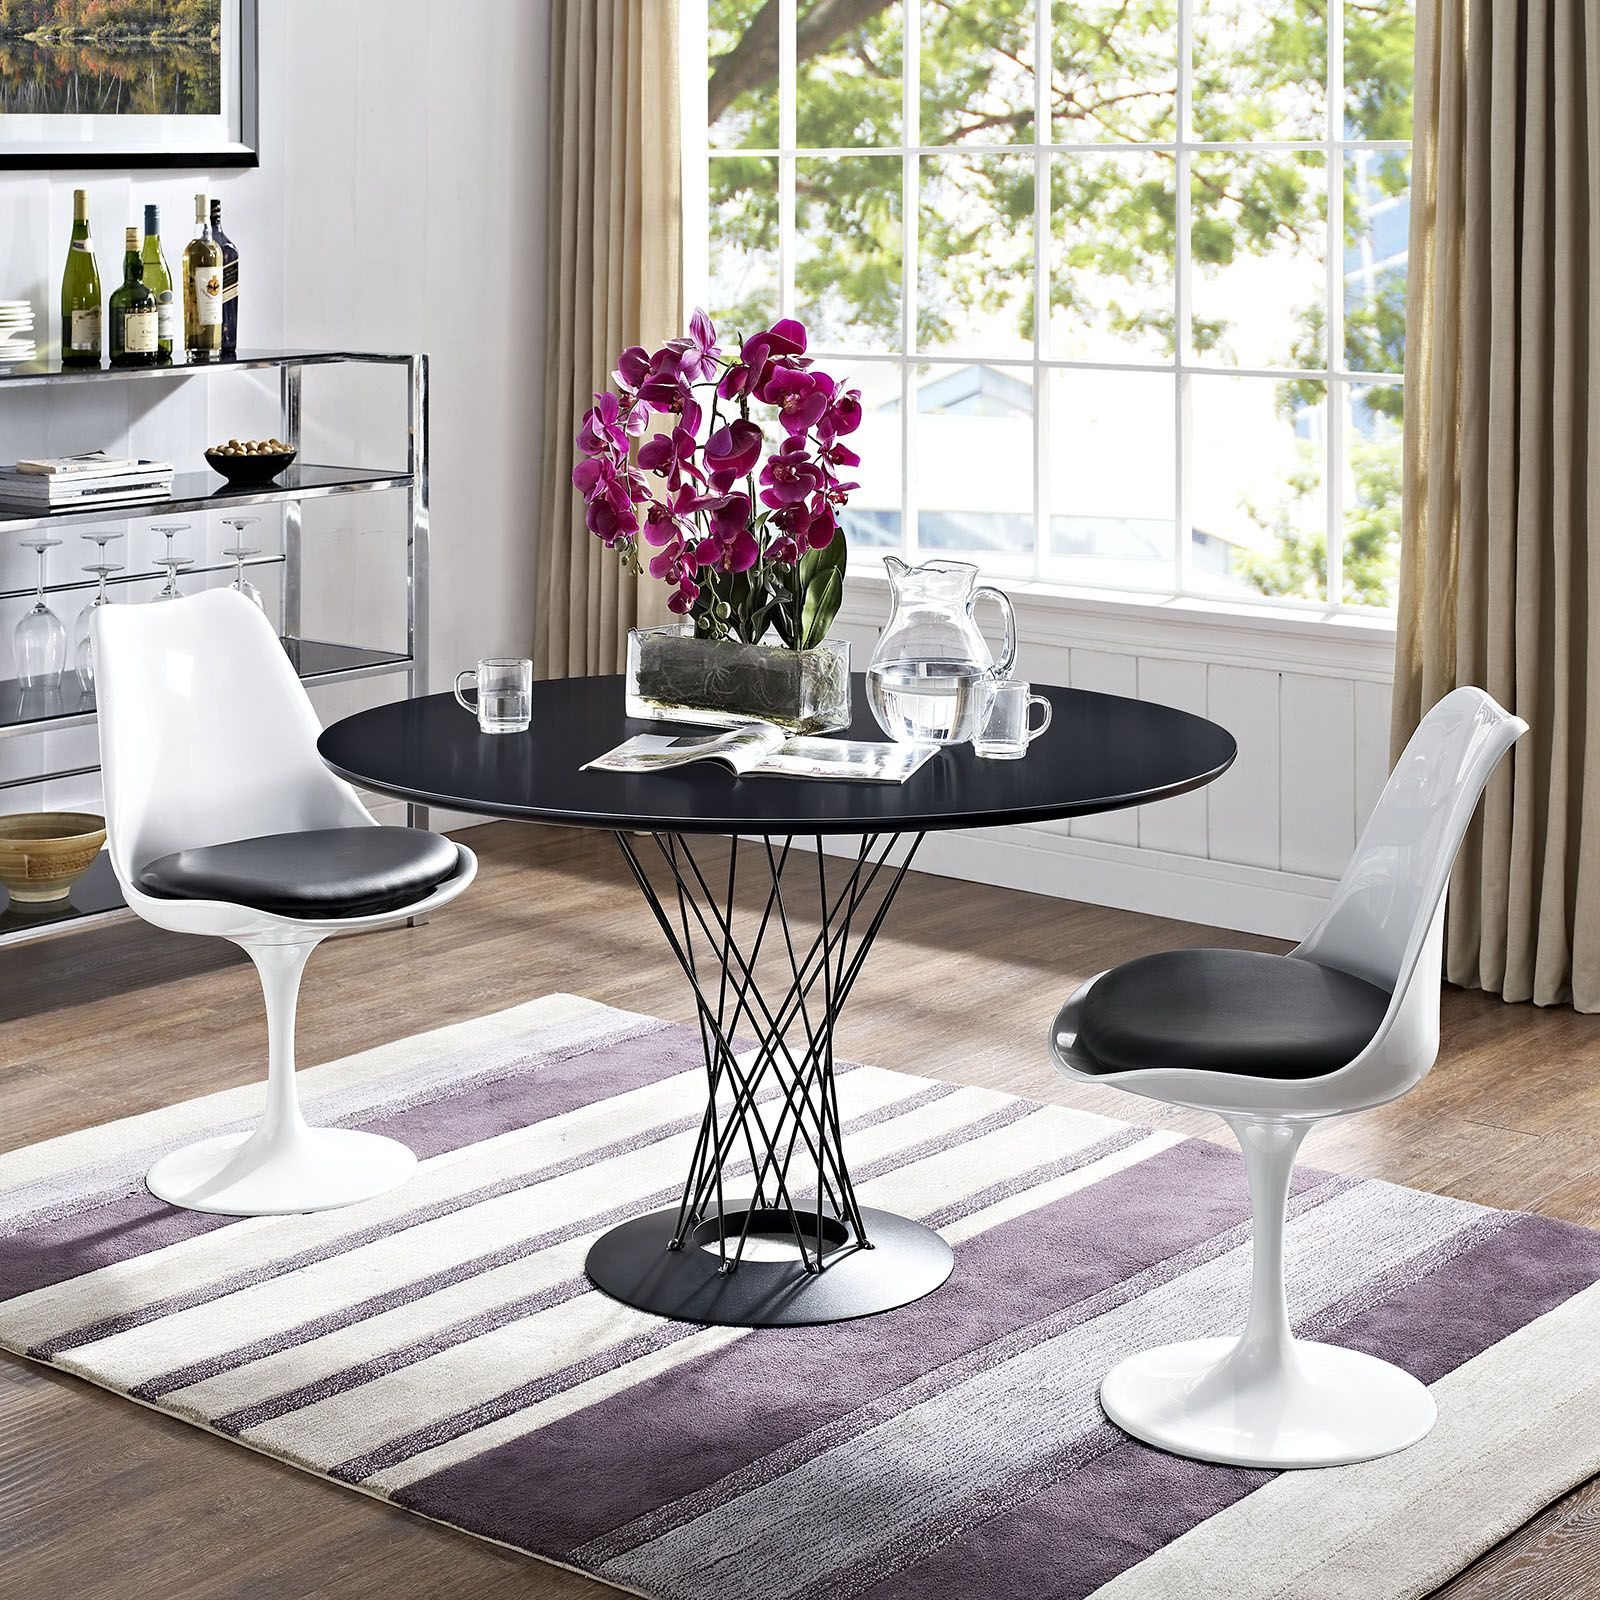 cyclone table tulip chair mid century style and modern